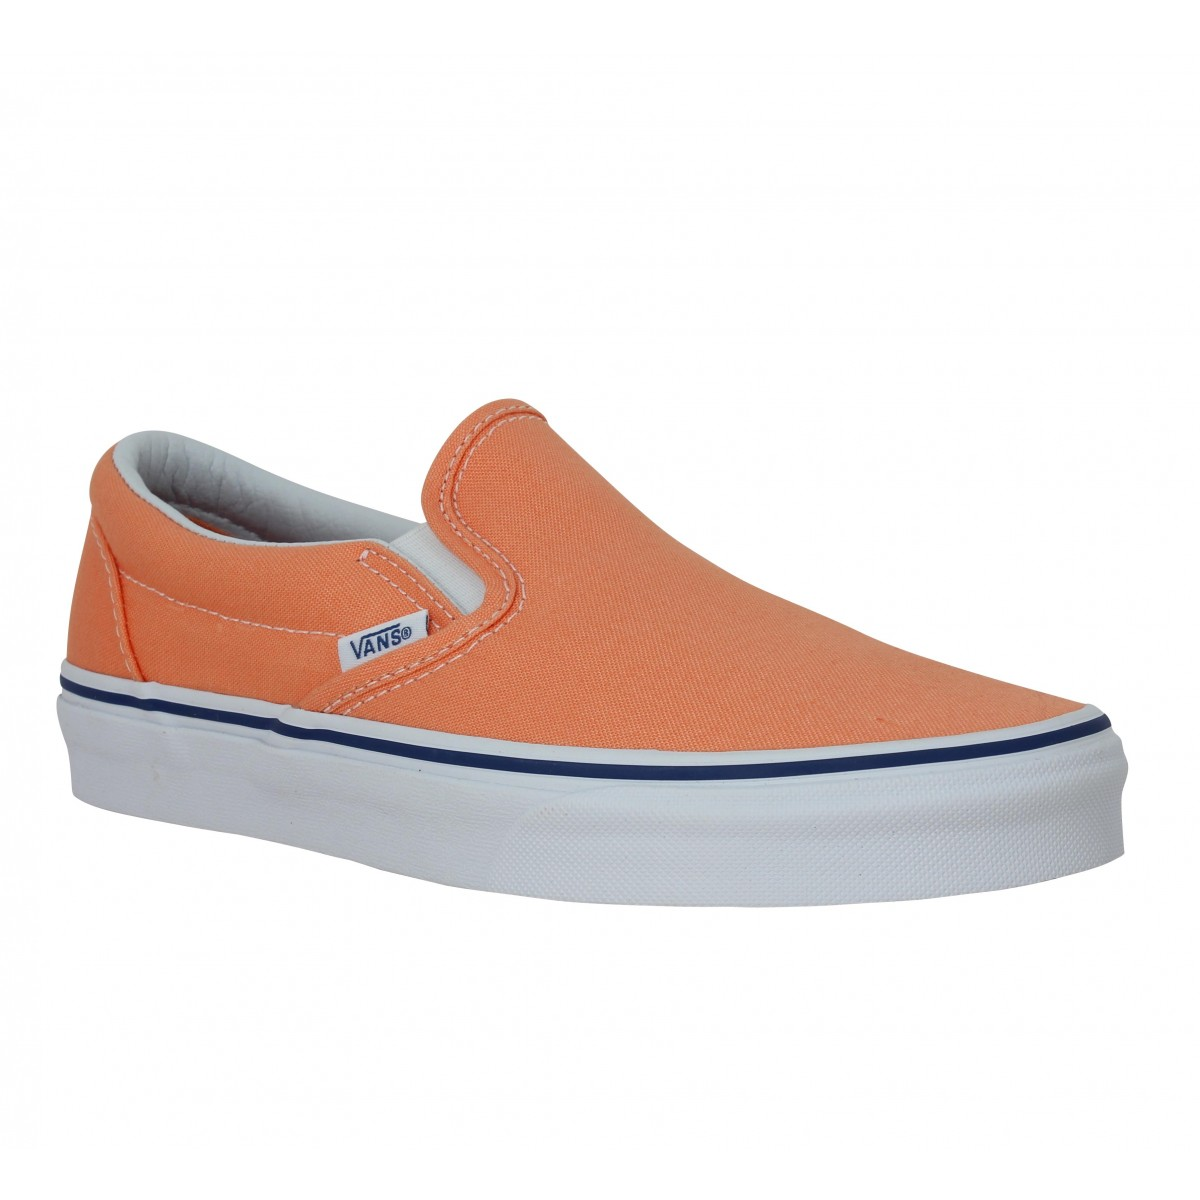 Baskets VANS Classic Slip On toile Femme Melon